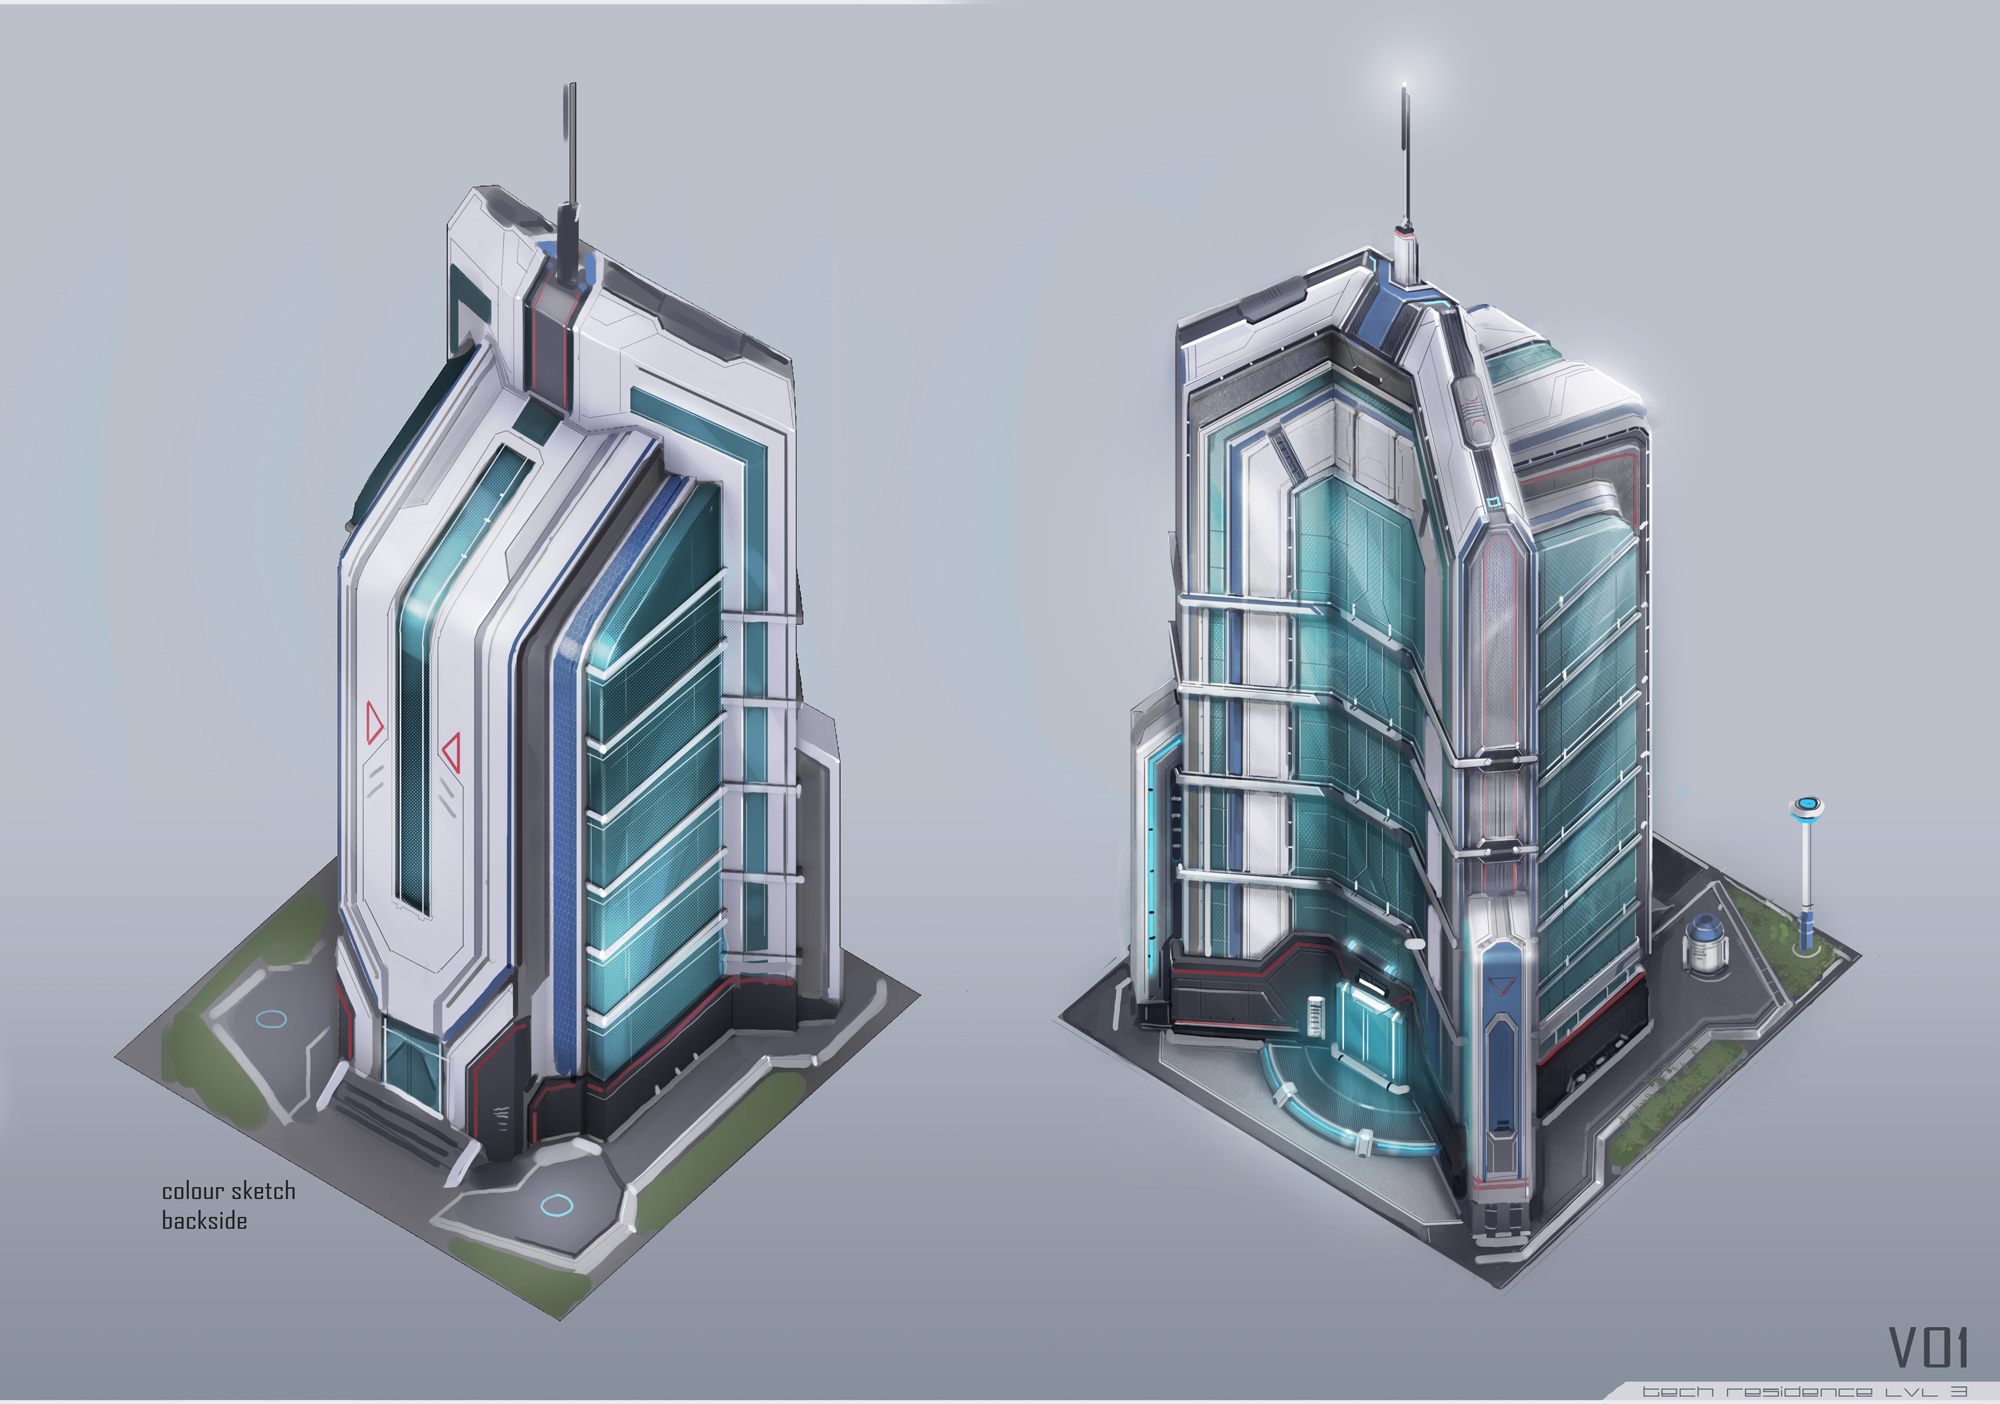 The anno sonar update 2012 10 02 forums Concept buildings